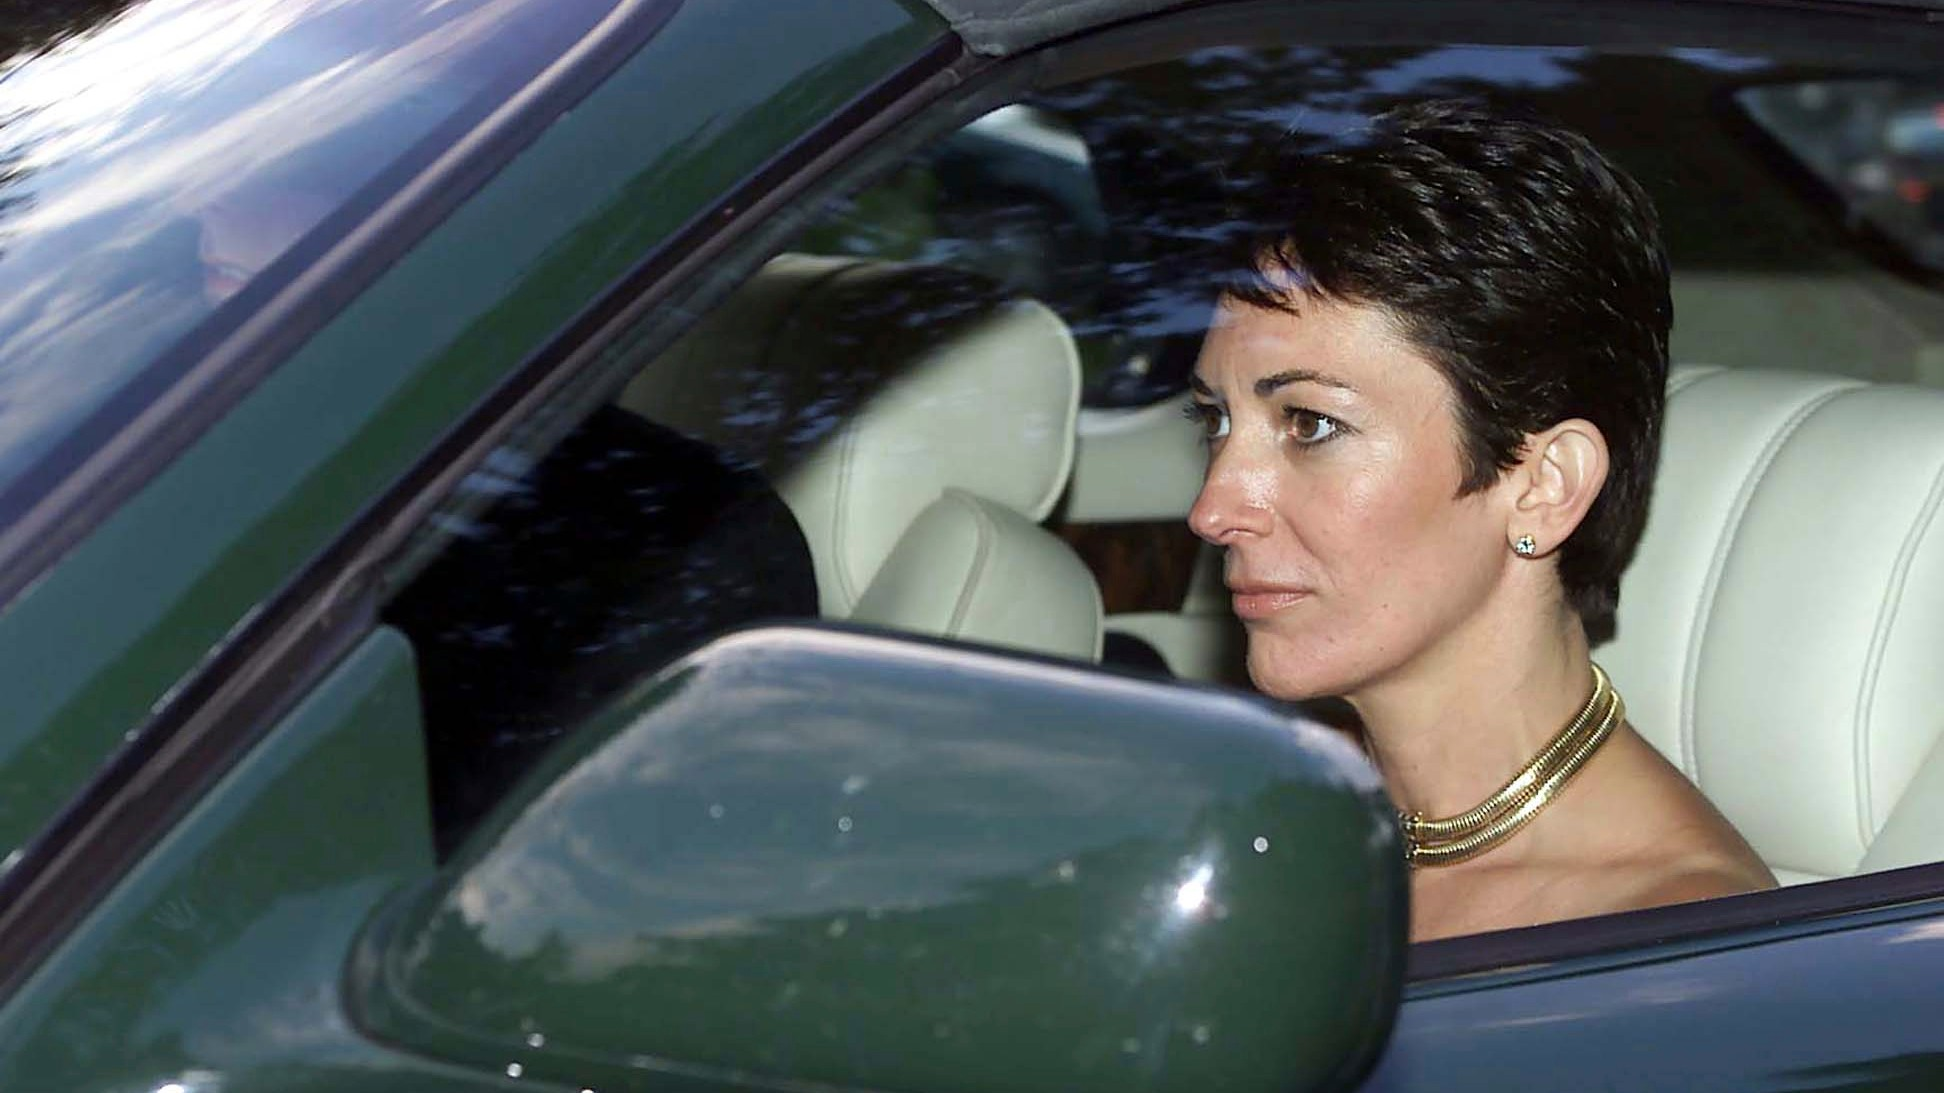 , Ghislaine Maxwell Allegedly Wrapped Her Cell Phone in Tinfoil to Avoid Surveillance, Saubio Making Wealth